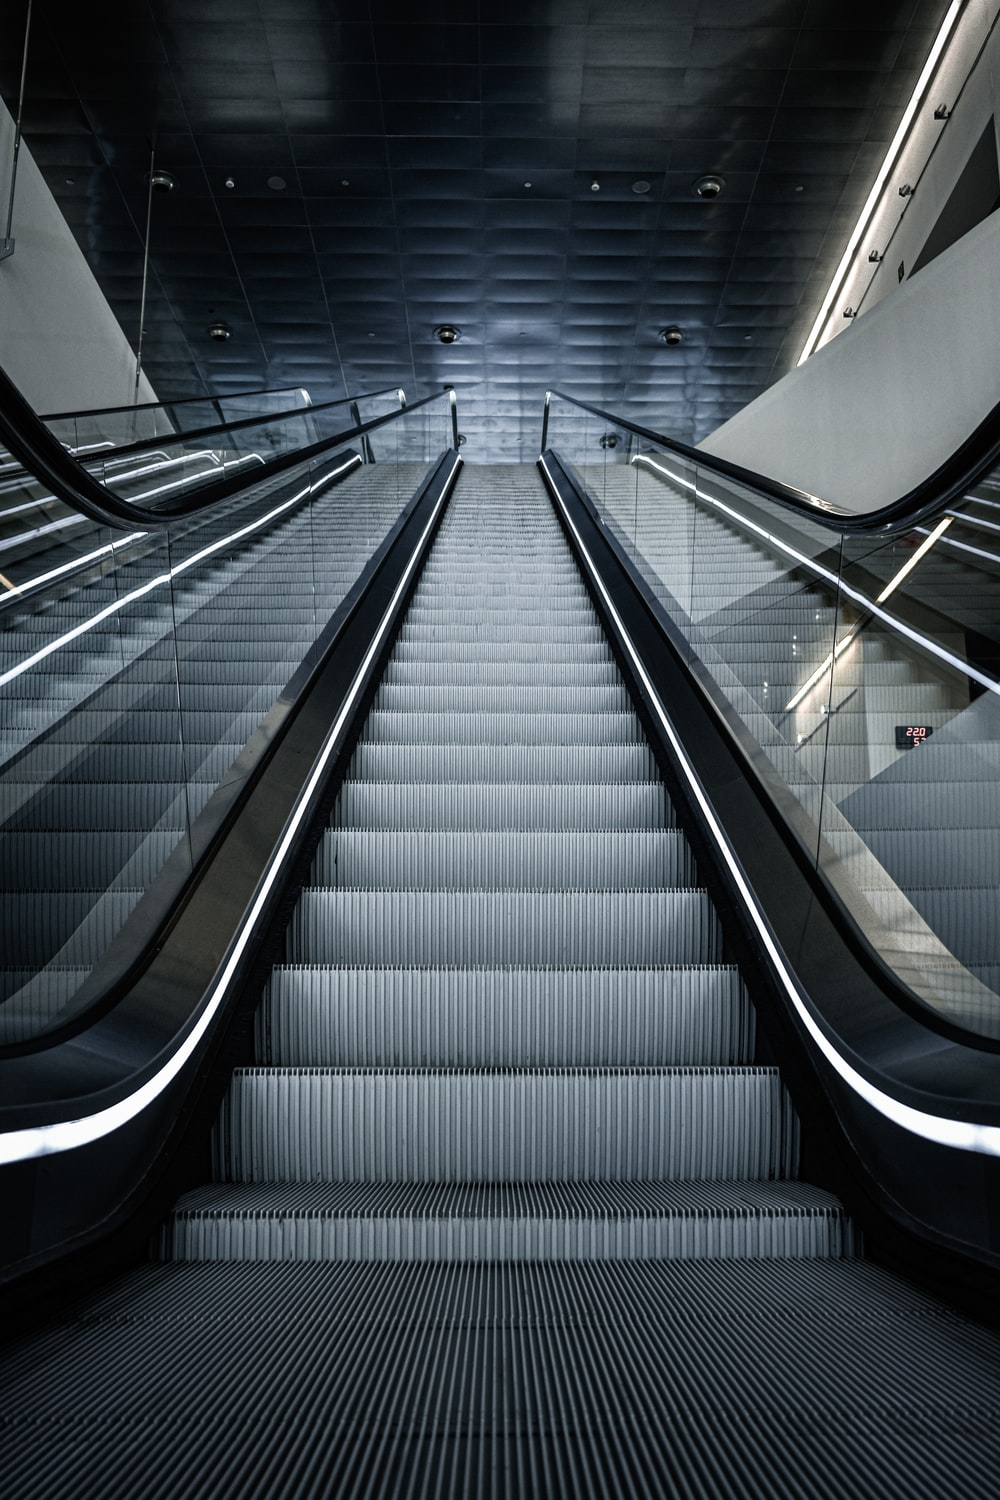 black and white escalator in a room